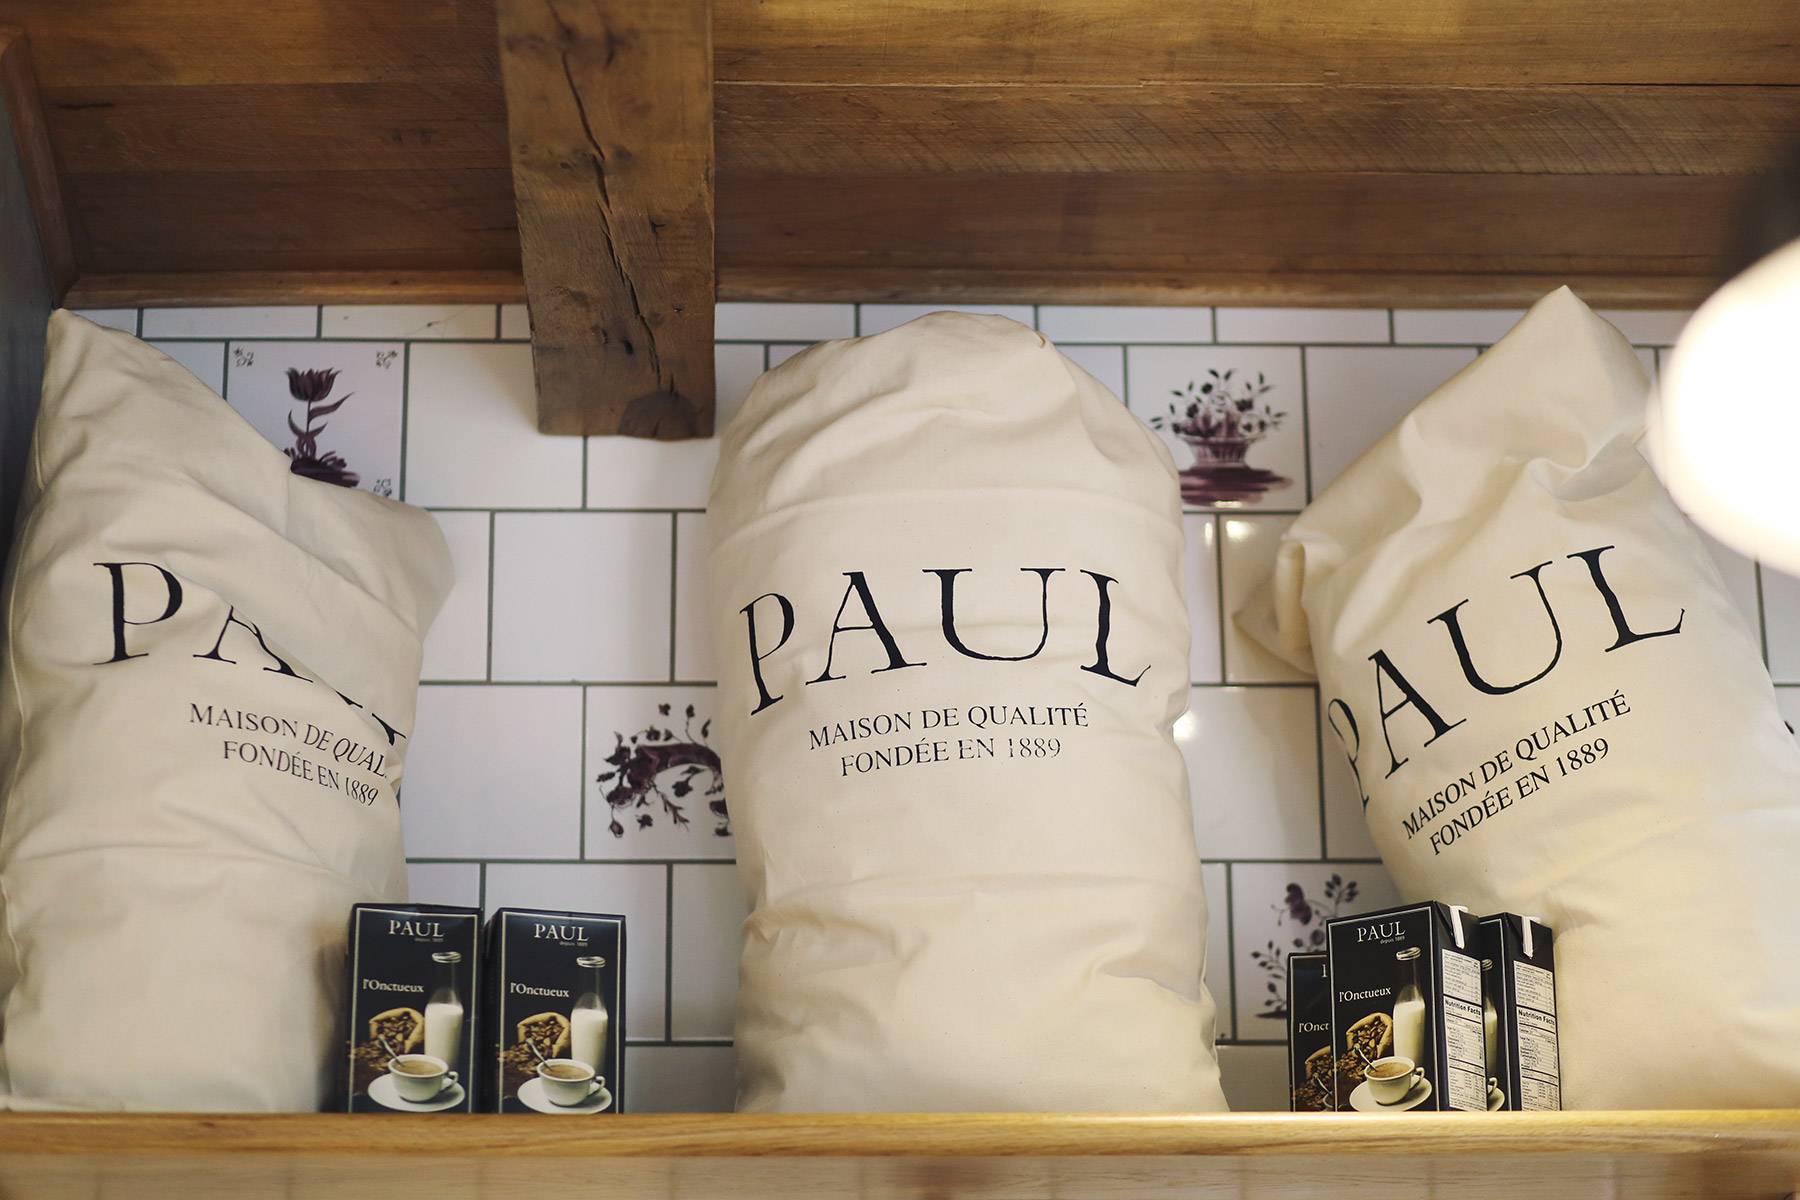 Paul-Bakery-9